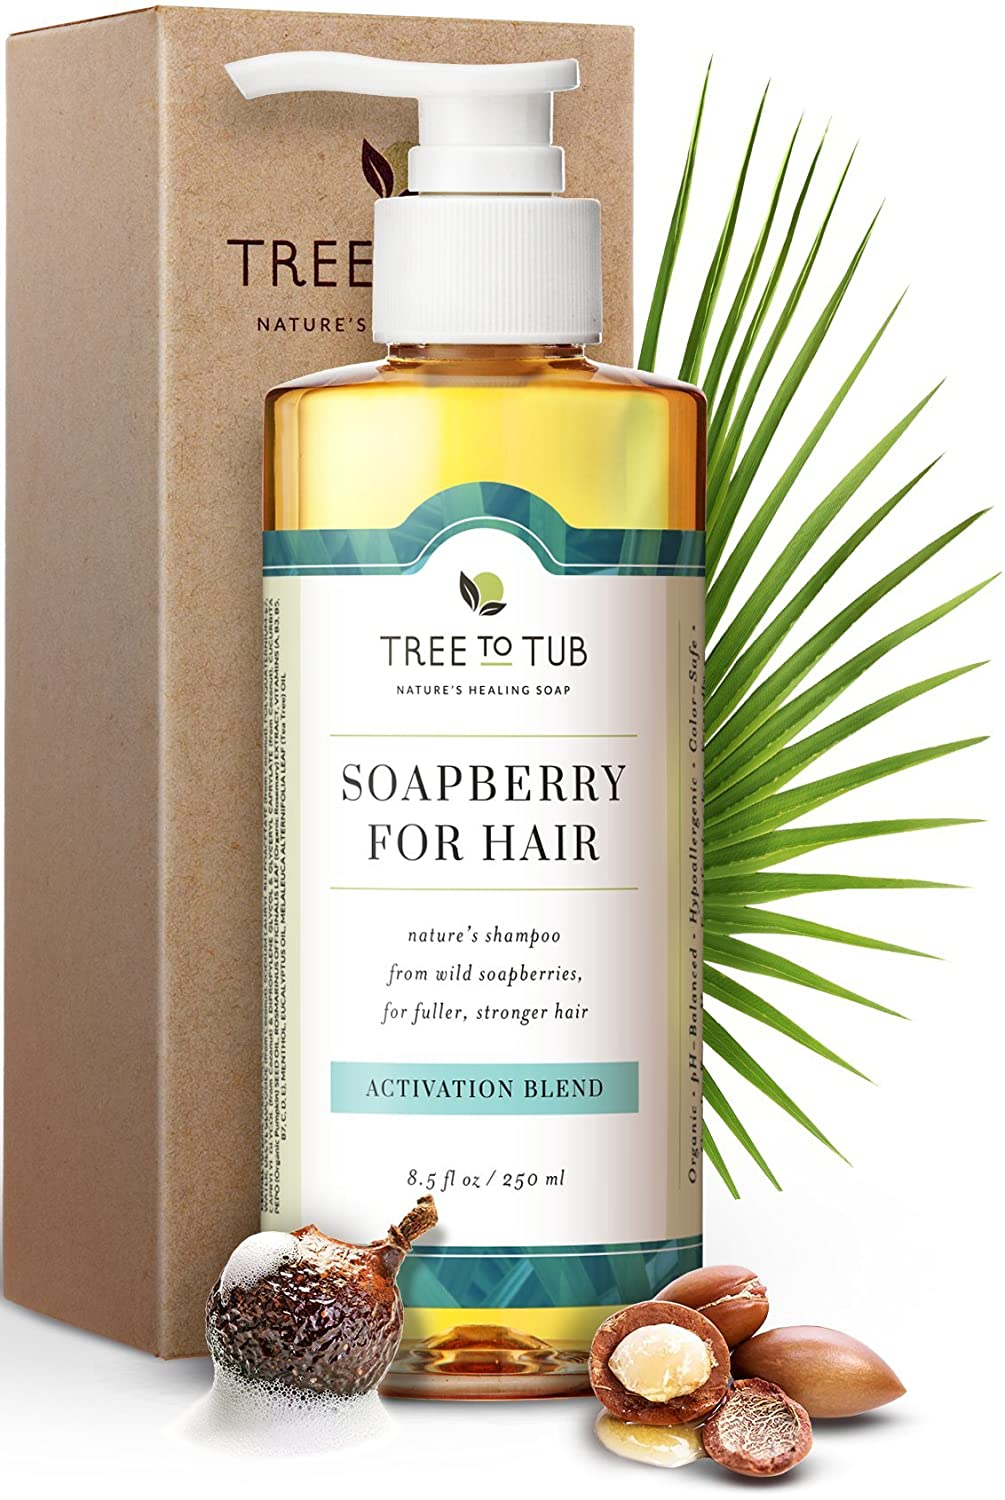 NEW before selling Gentle Hair Volumizing Shampoo by Tree sold out To Caffeine Biotin - Tub